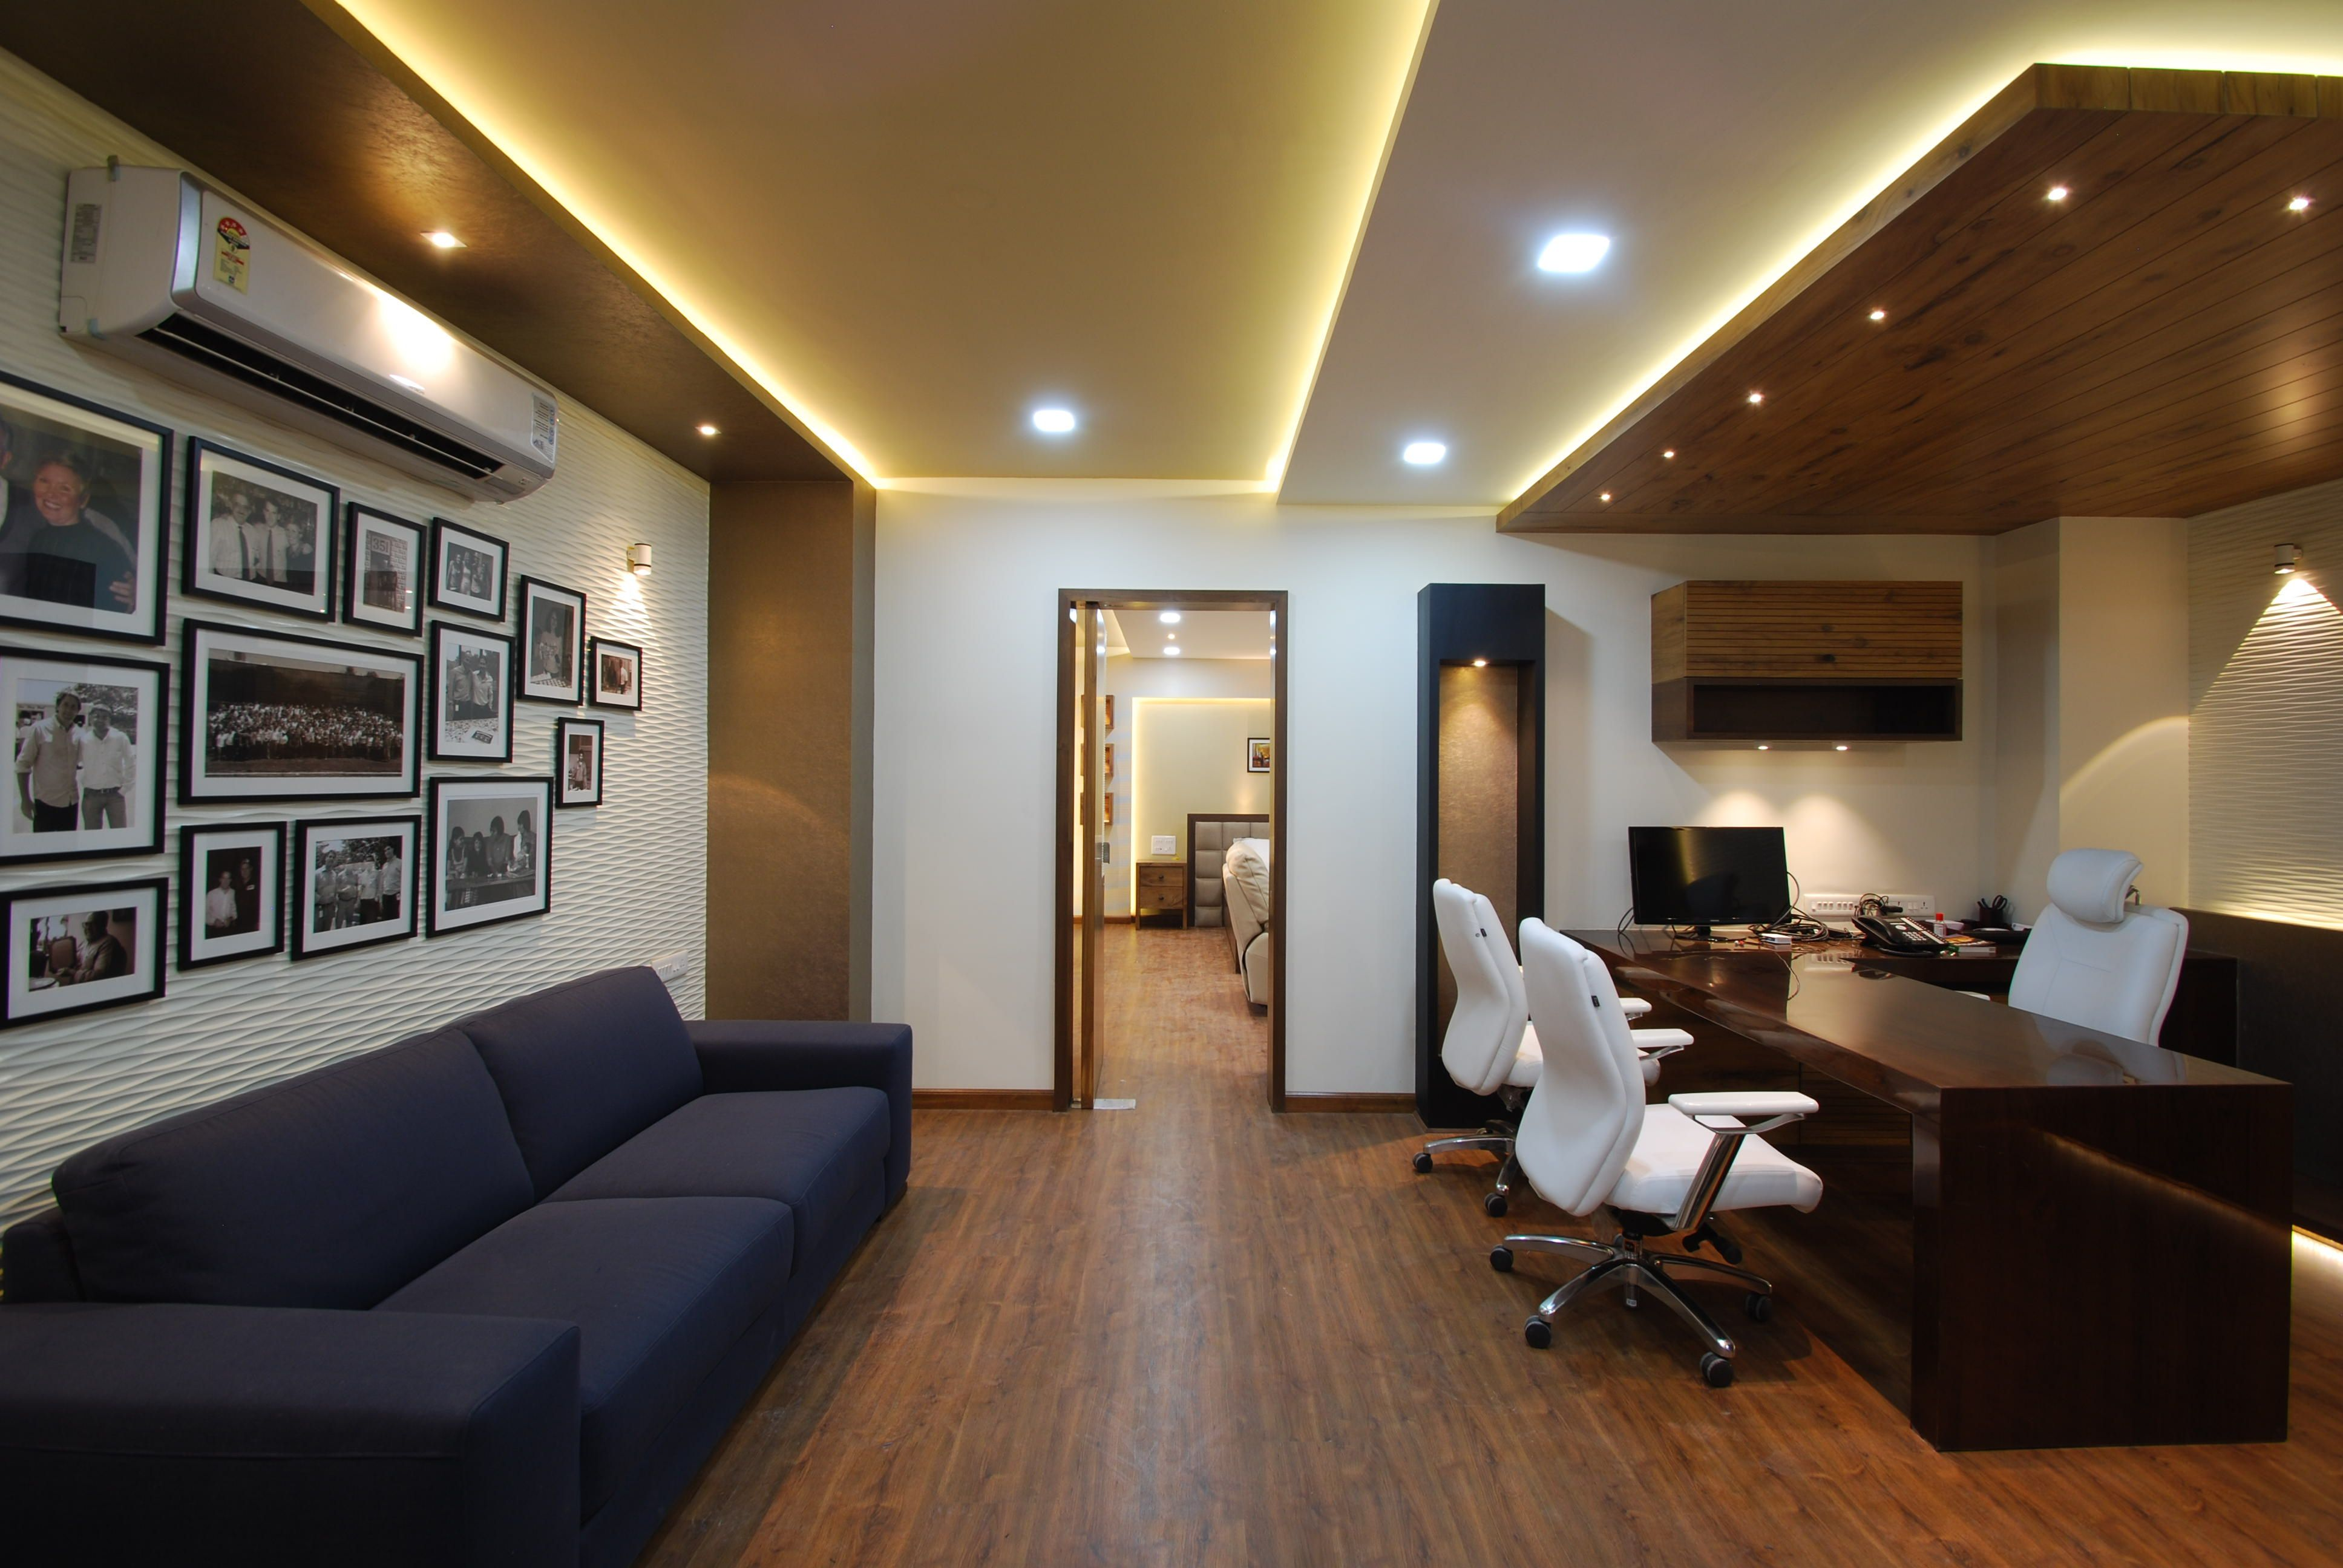 Interior Designs Images Cpc Office Interior Design By Maulik Vyas Architects